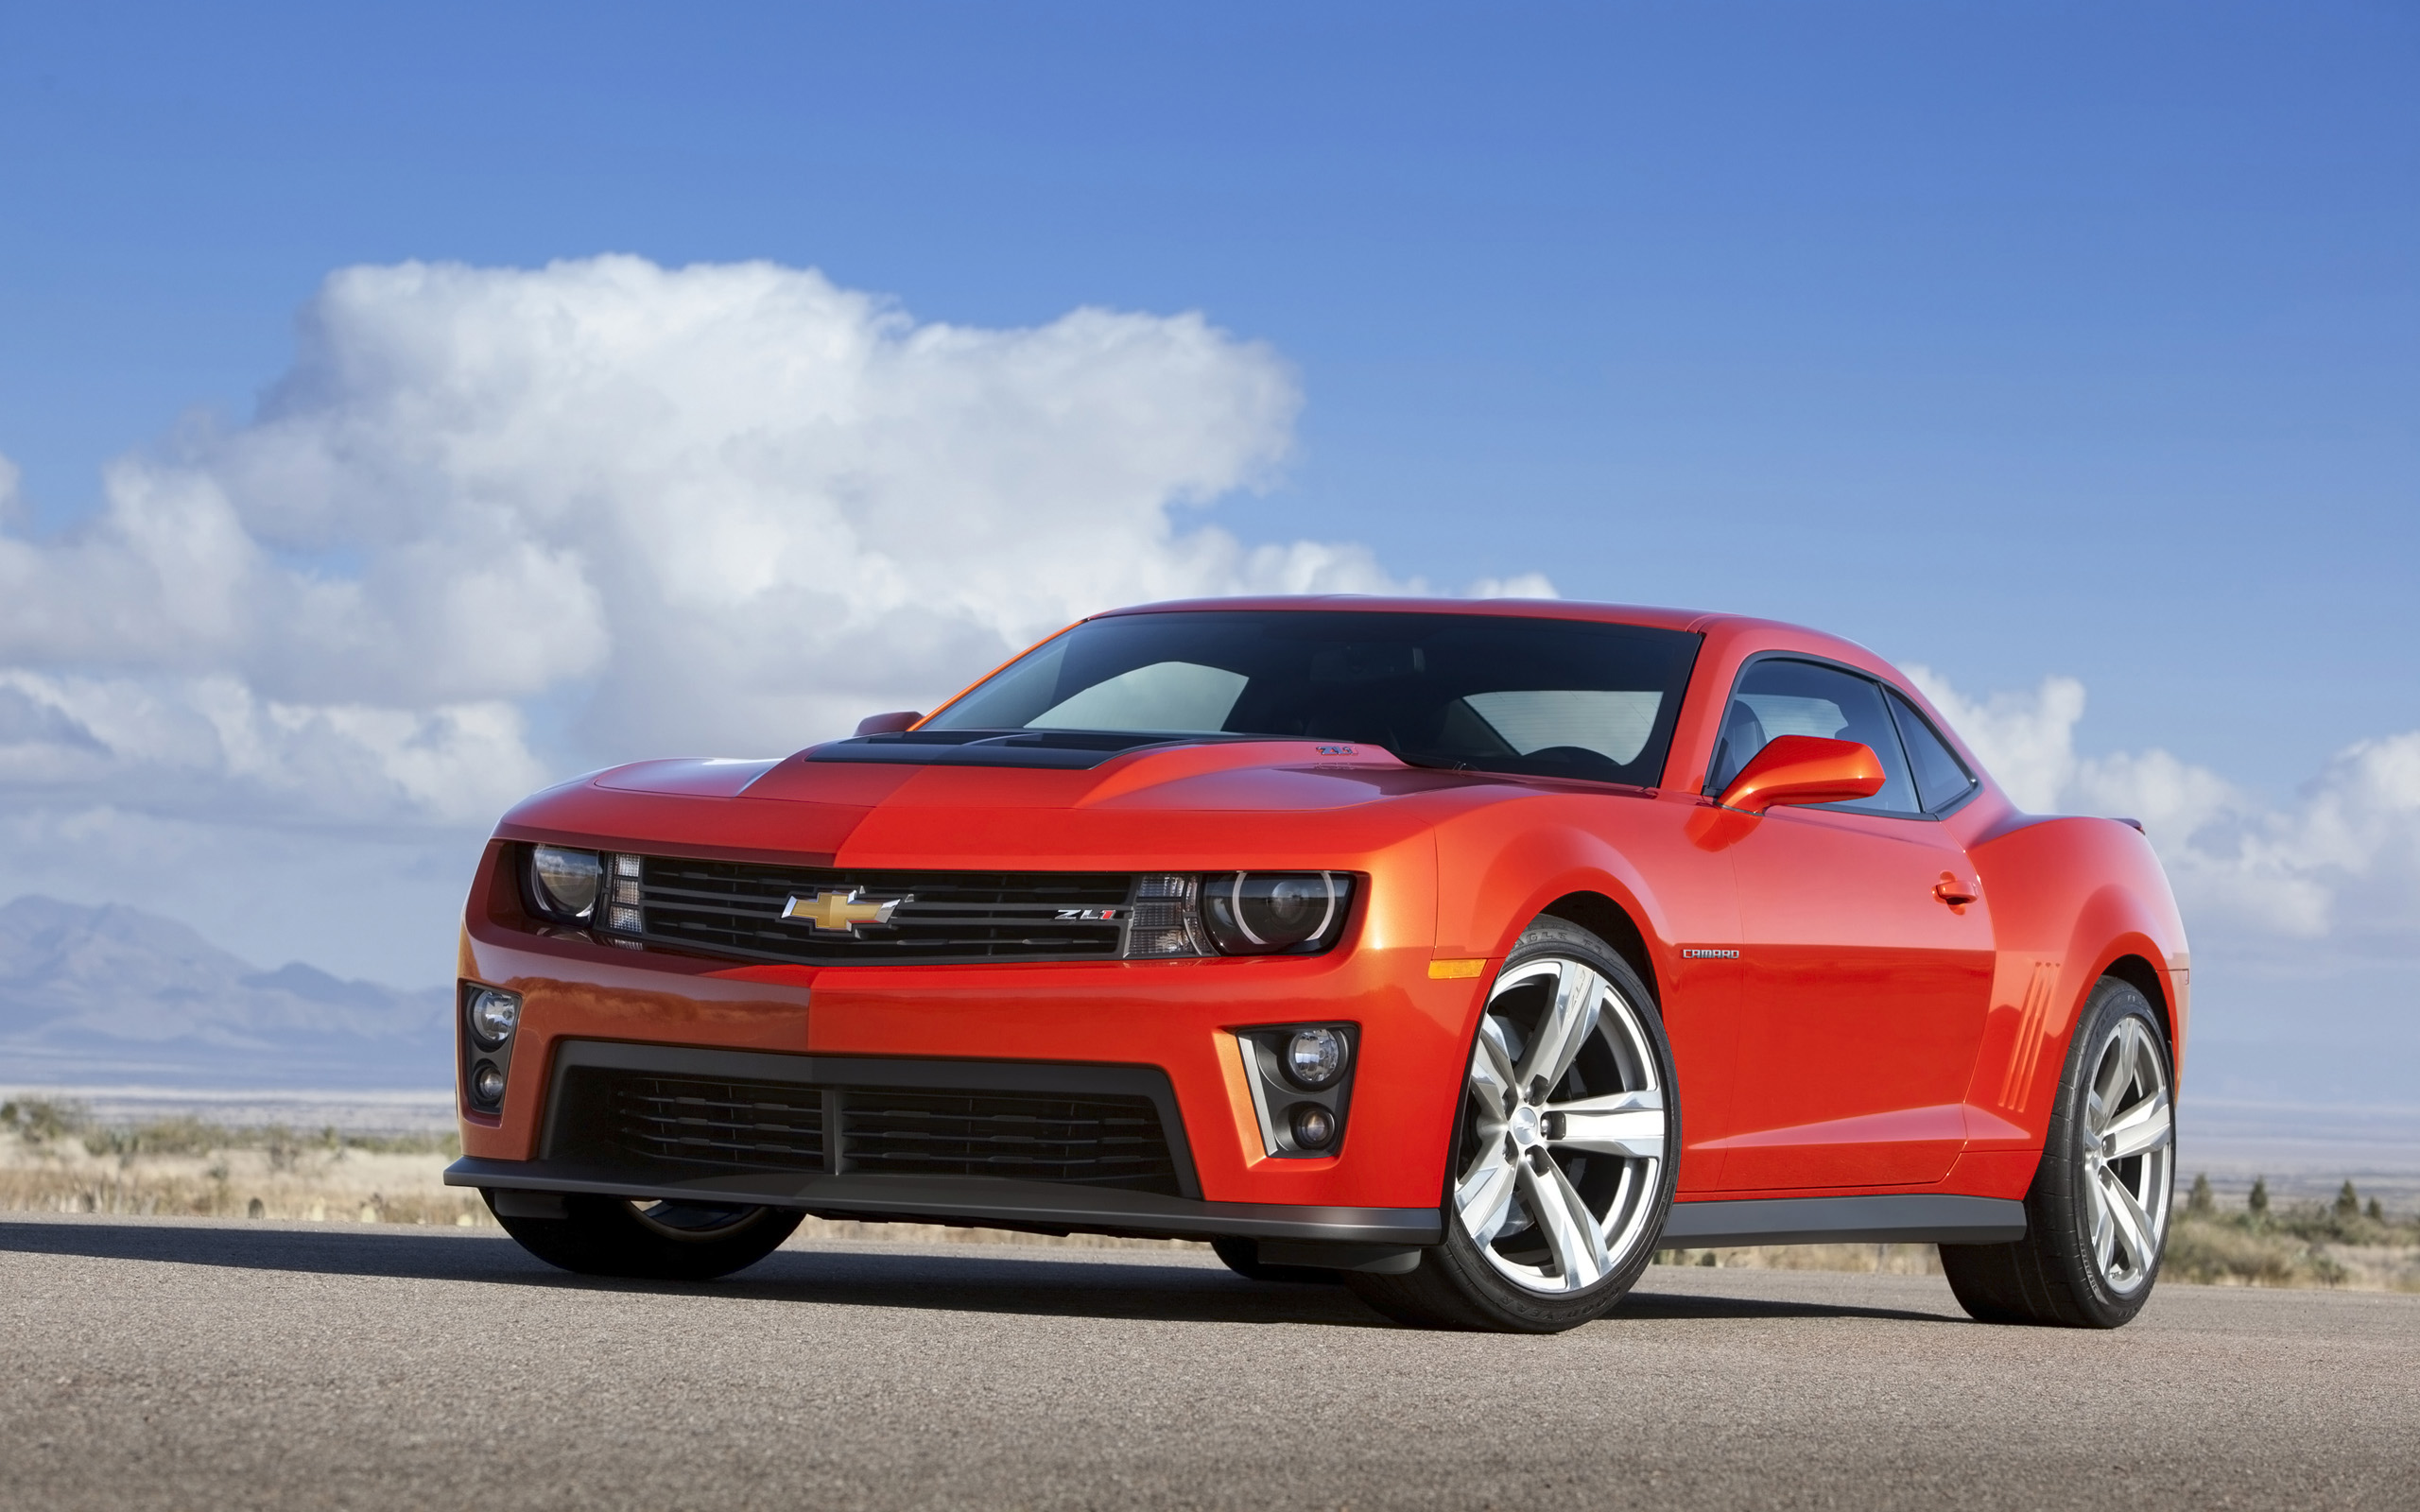 2014 Chevrolet Camaro Zl1 Coupe Wallpaper Hd Car Wallpapers Id 4367